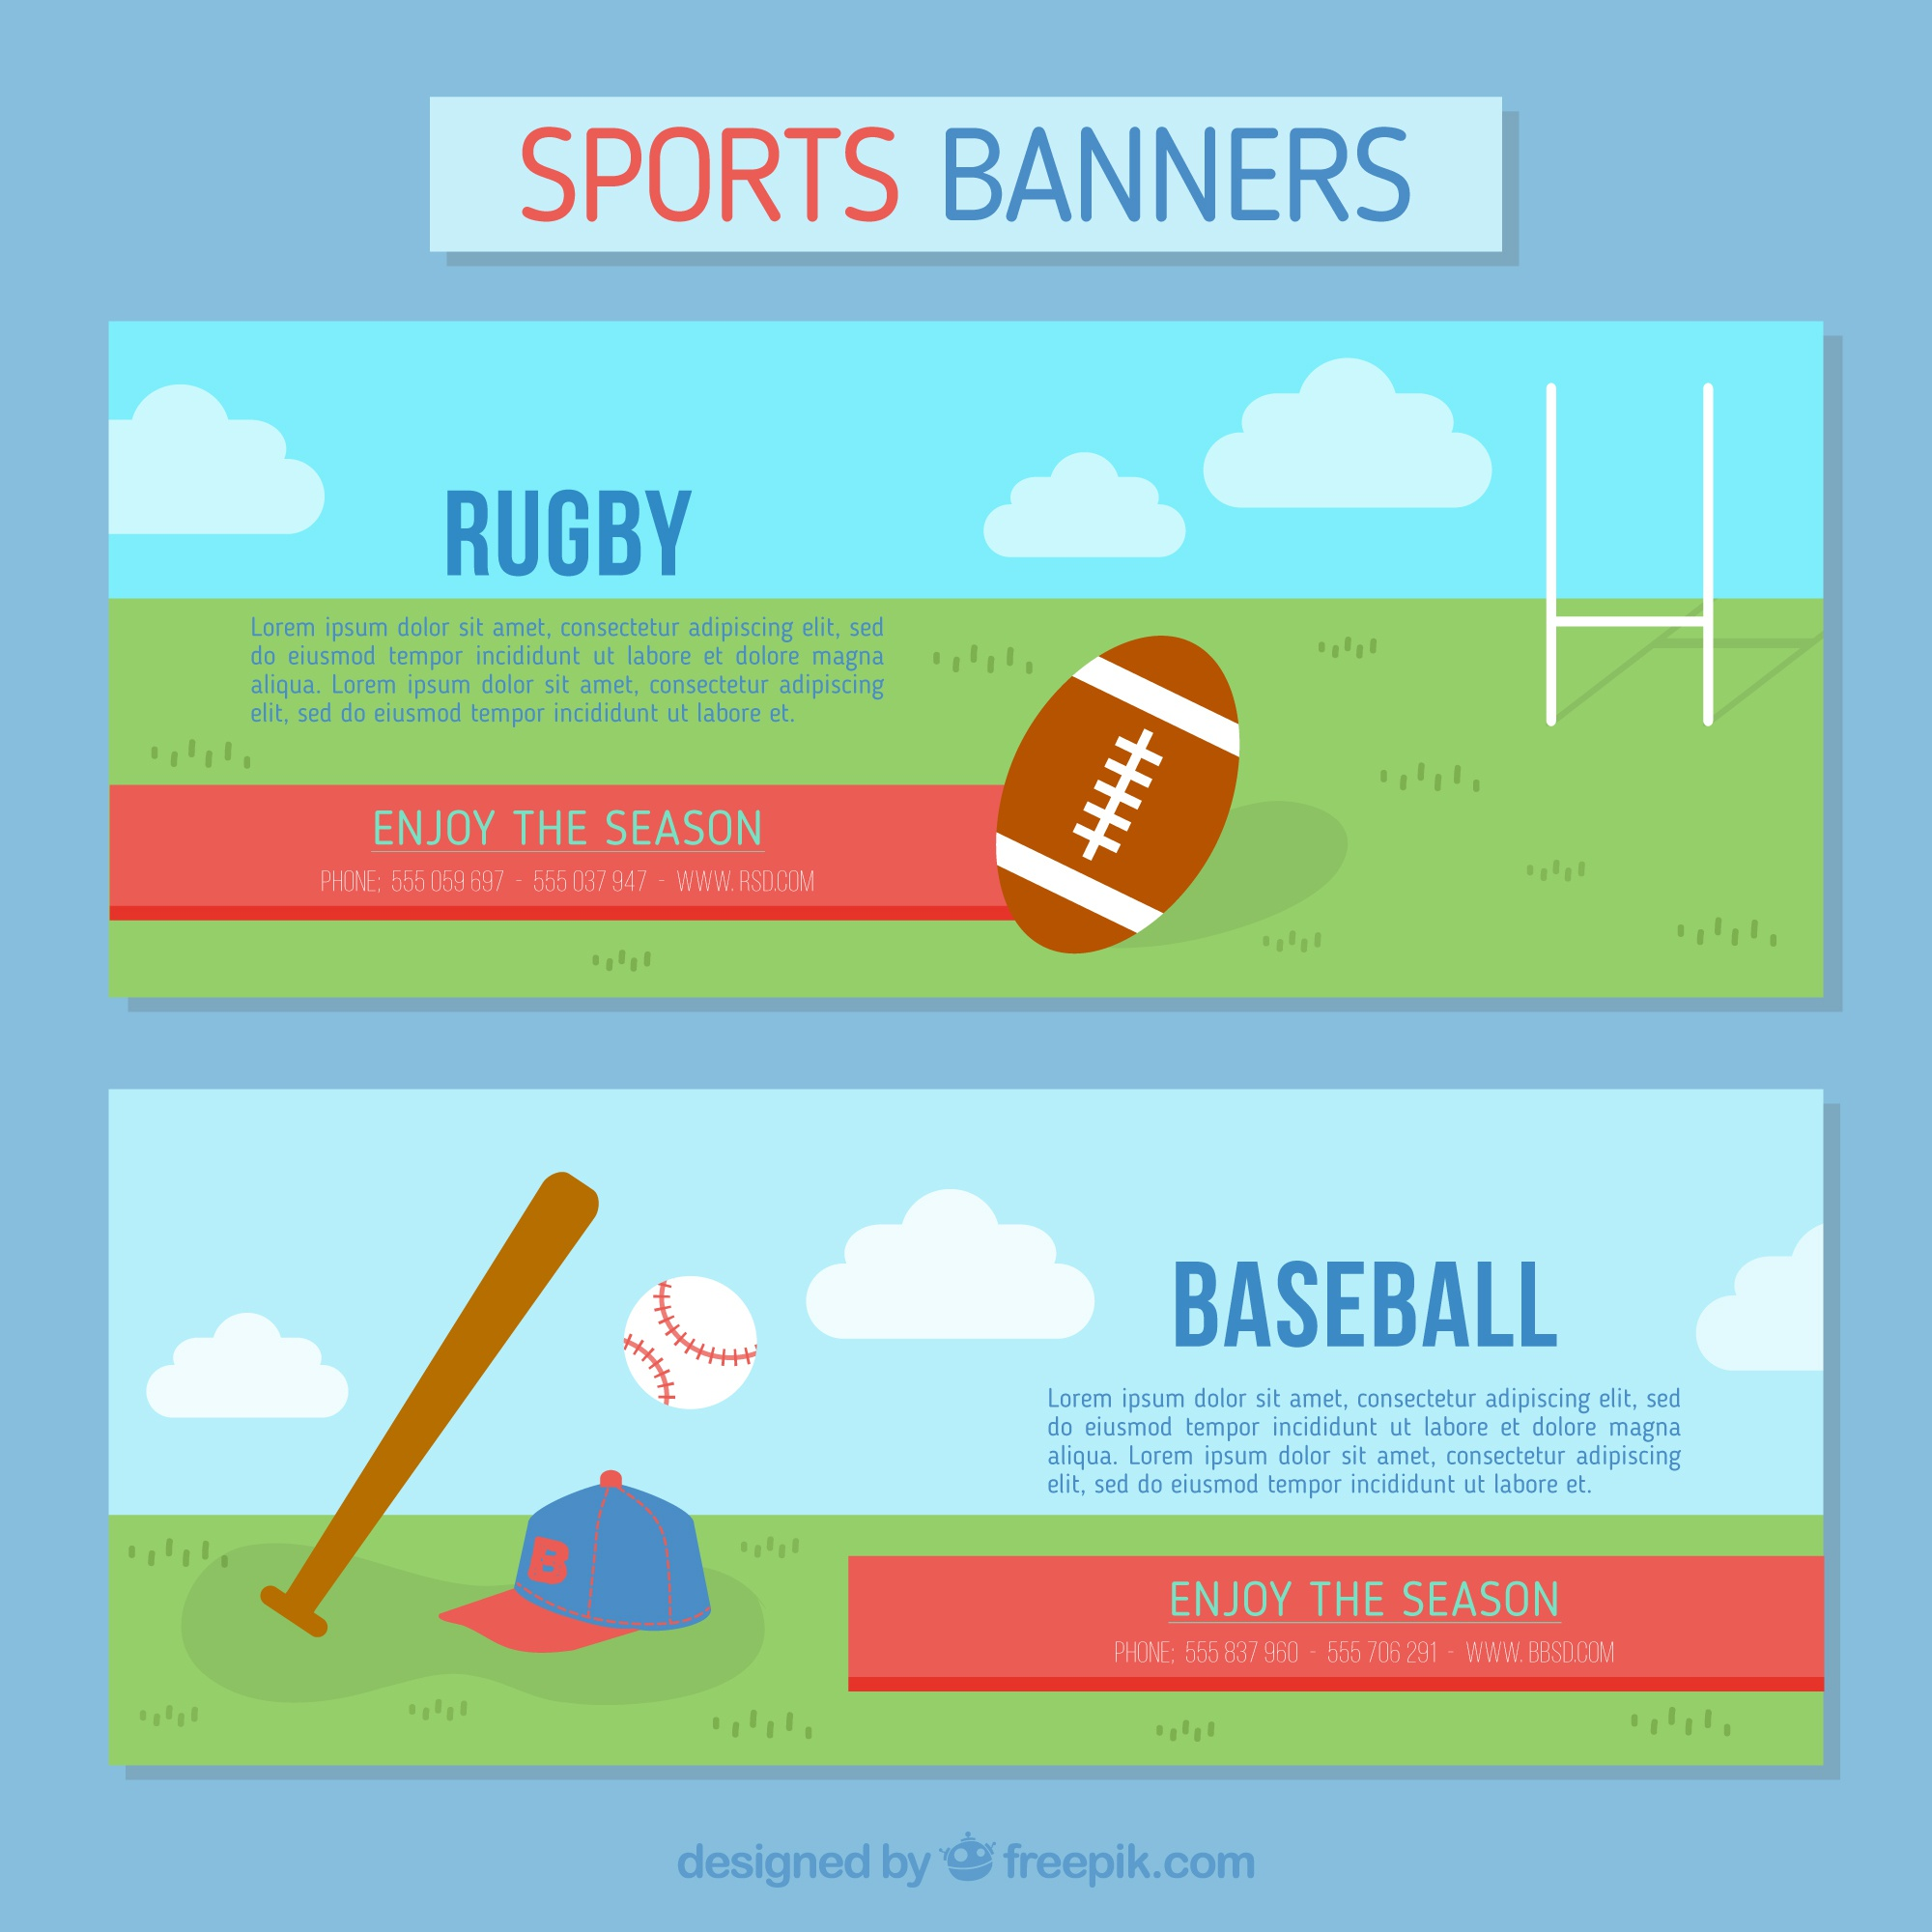 Banners of rugby and baseball